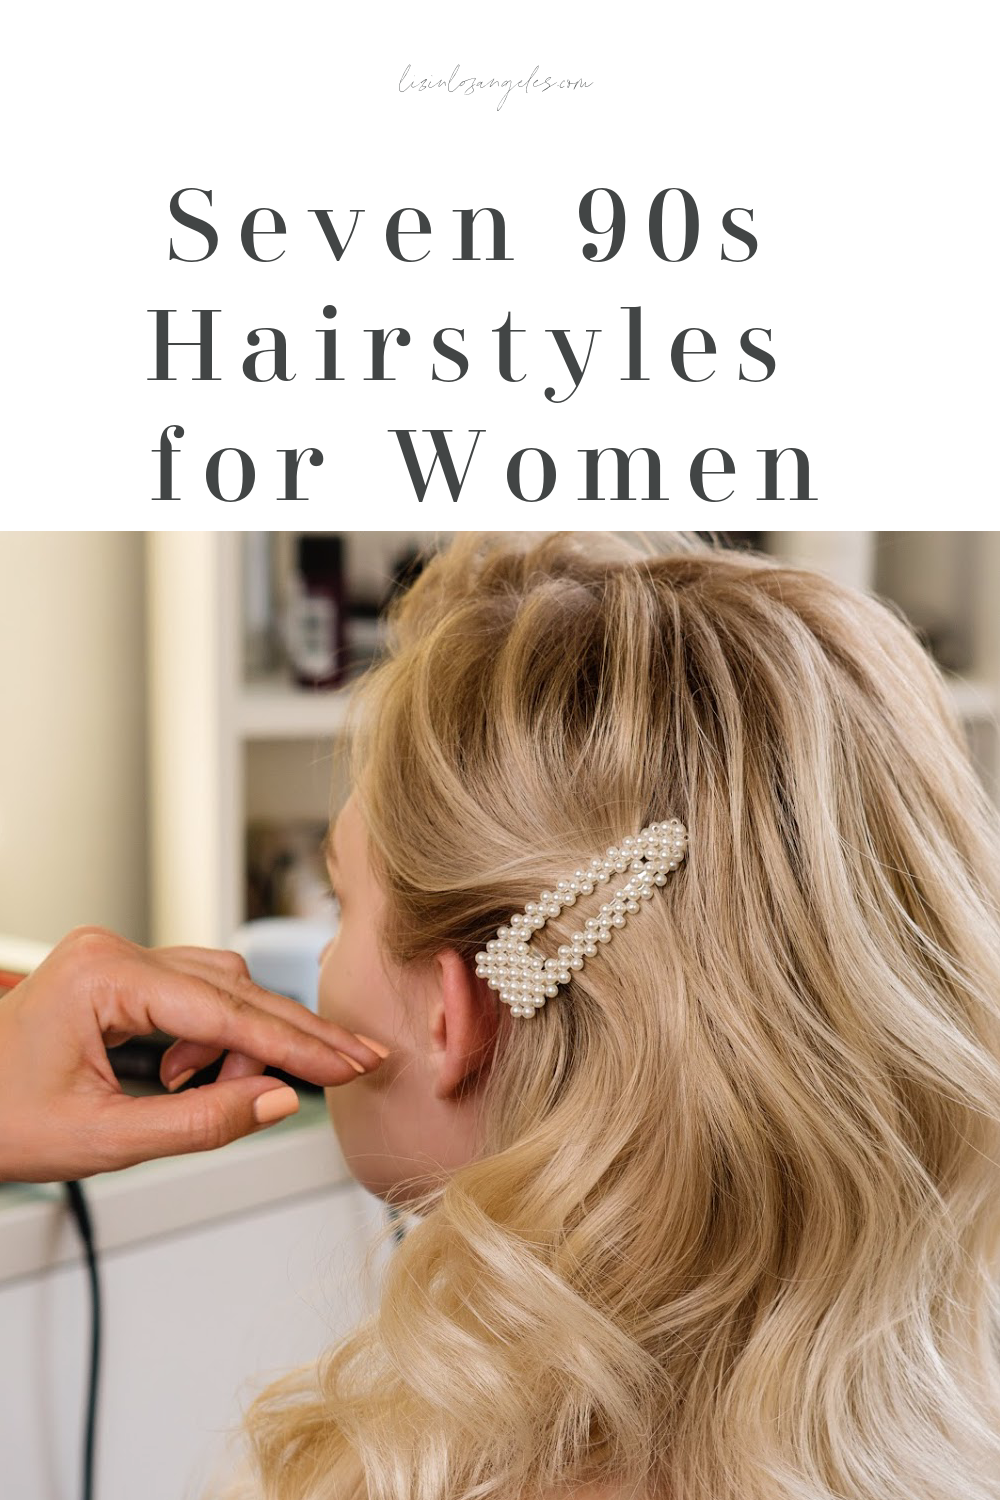 Seven 90s Hairstyles for Women, a blog post by Liz in Los Angeles, Los Angeles Lifestyle Blogger, an image of a women with barrette in her hair